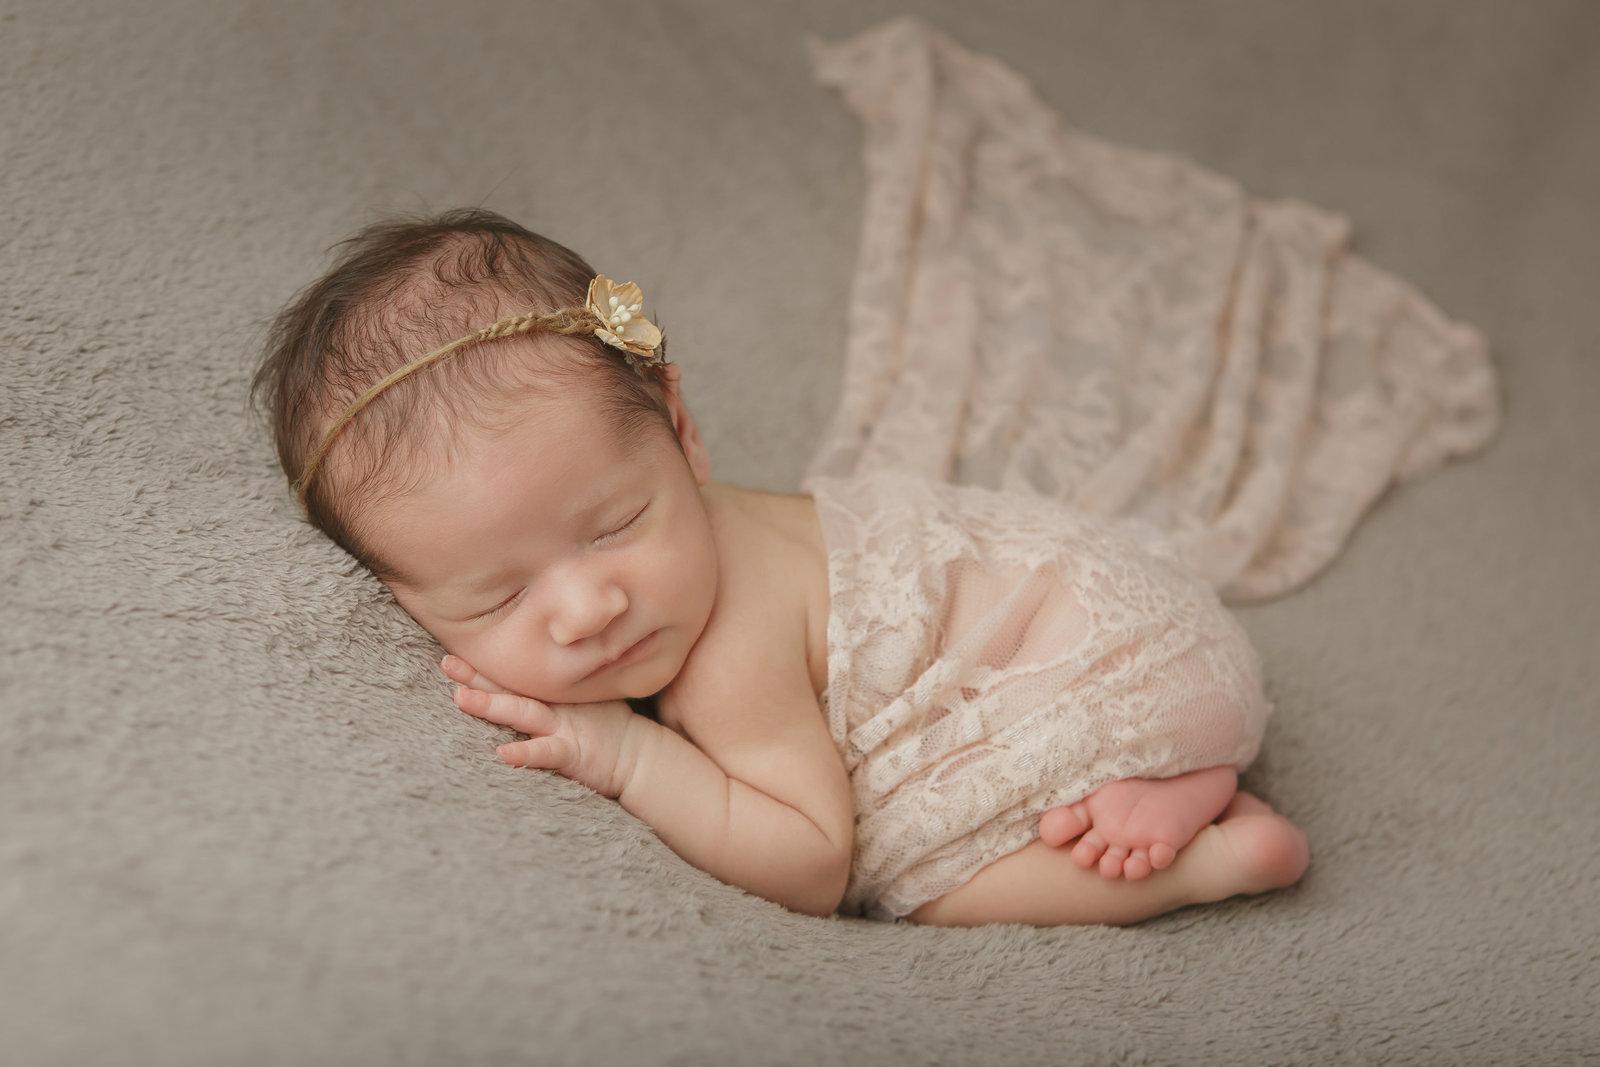 sleeping newborn baby girl with neutral earth tones, lace wrap and headband in a cute pose by Hudson Valley professional photographer in Cornwall NY photography studio